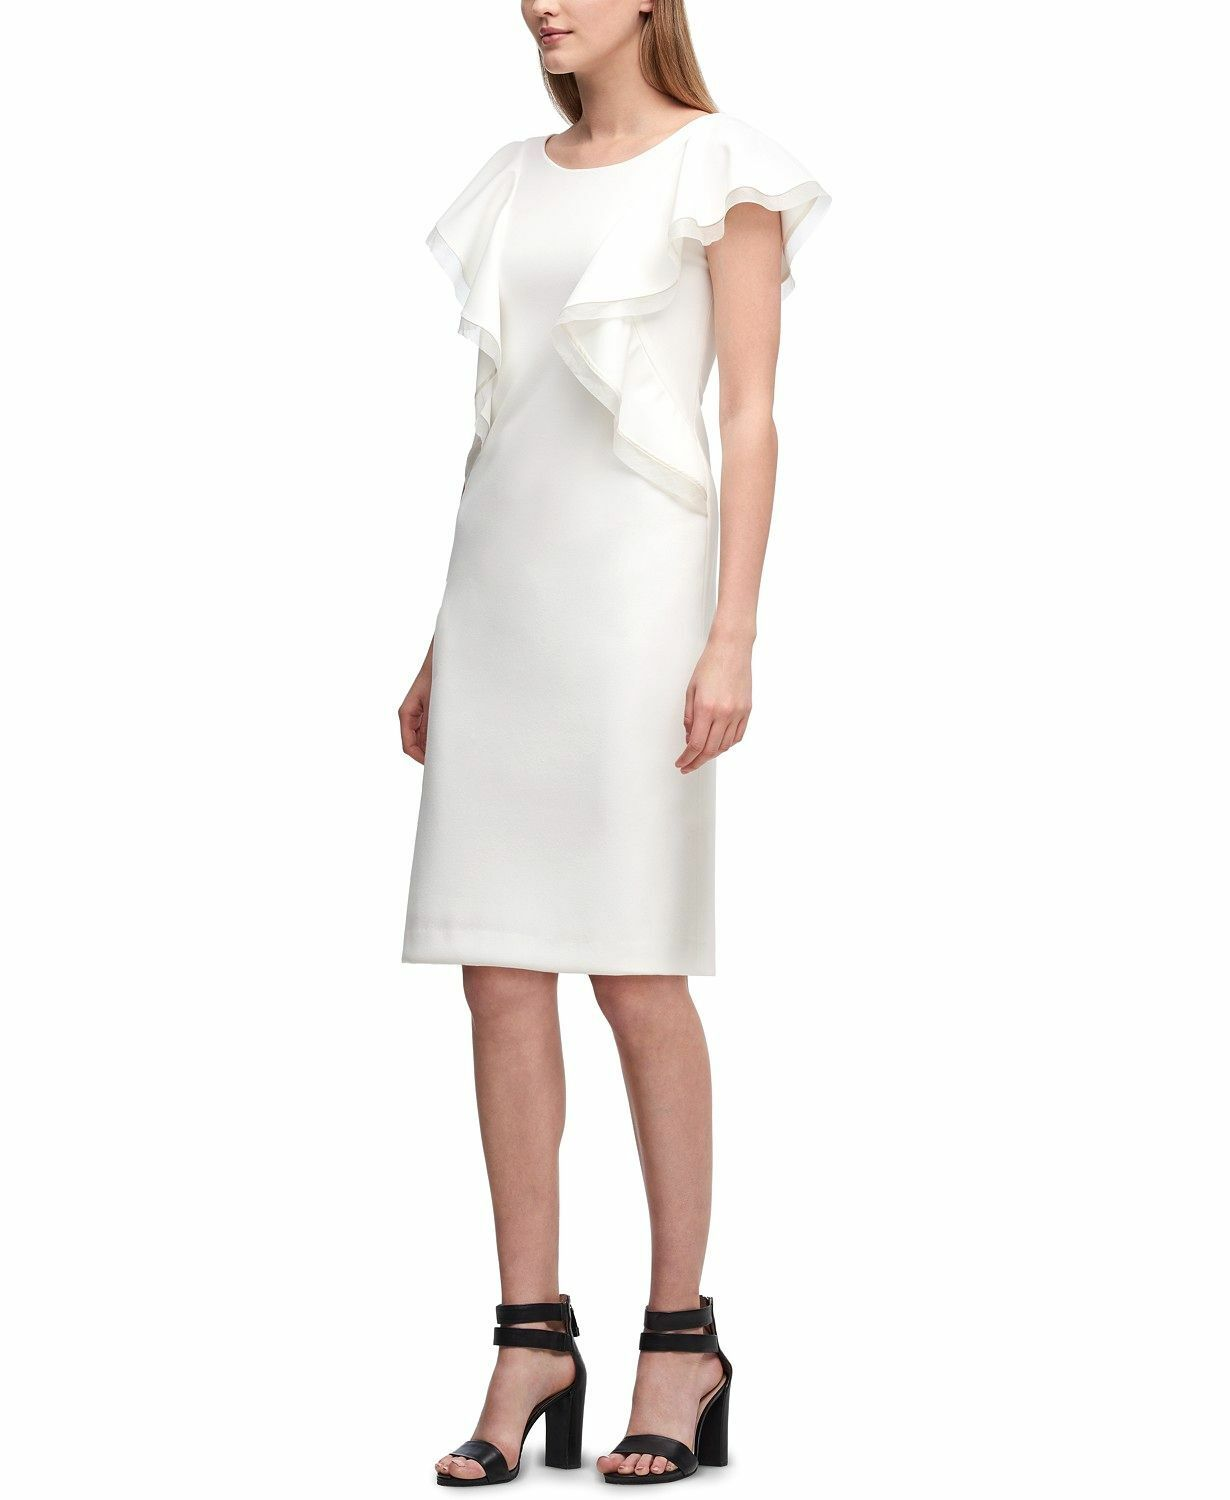 460 DKNY WOMEN'S WHITE RUFFLED SCUBA CREPE SHEATH SLEEVELESS DRESS SIZE 4